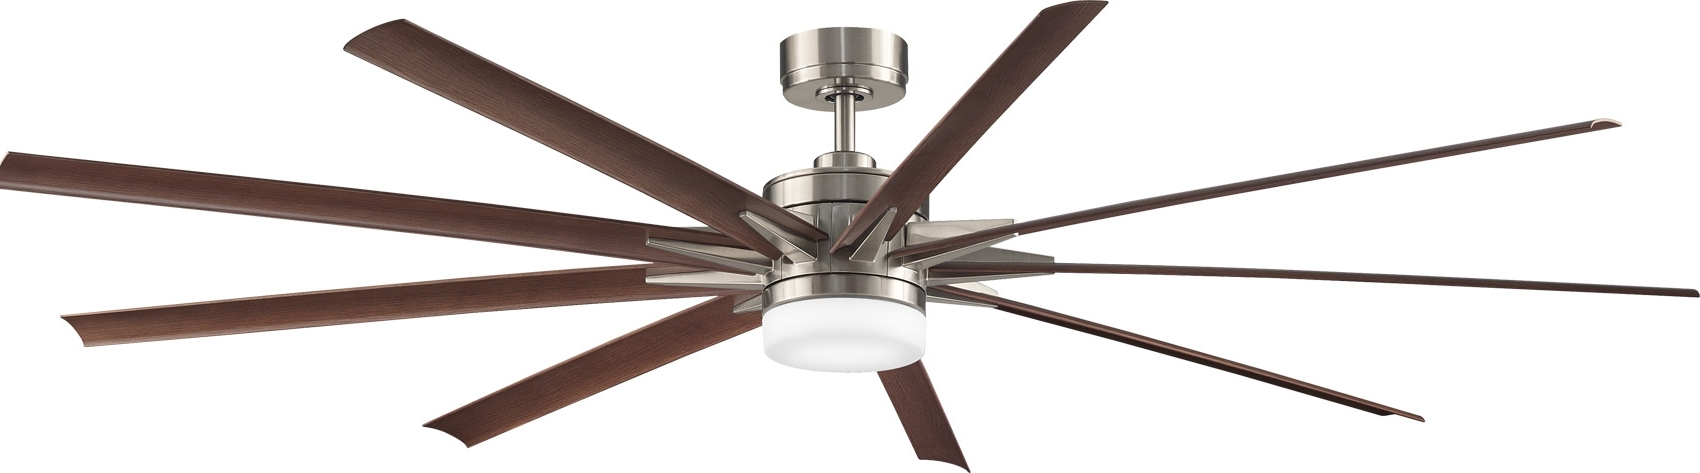 "Odyn 84"" Large Ceiling Fanfanimation Within Famous High Volume Outdoor Ceiling Fans (Gallery 13 of 20)"